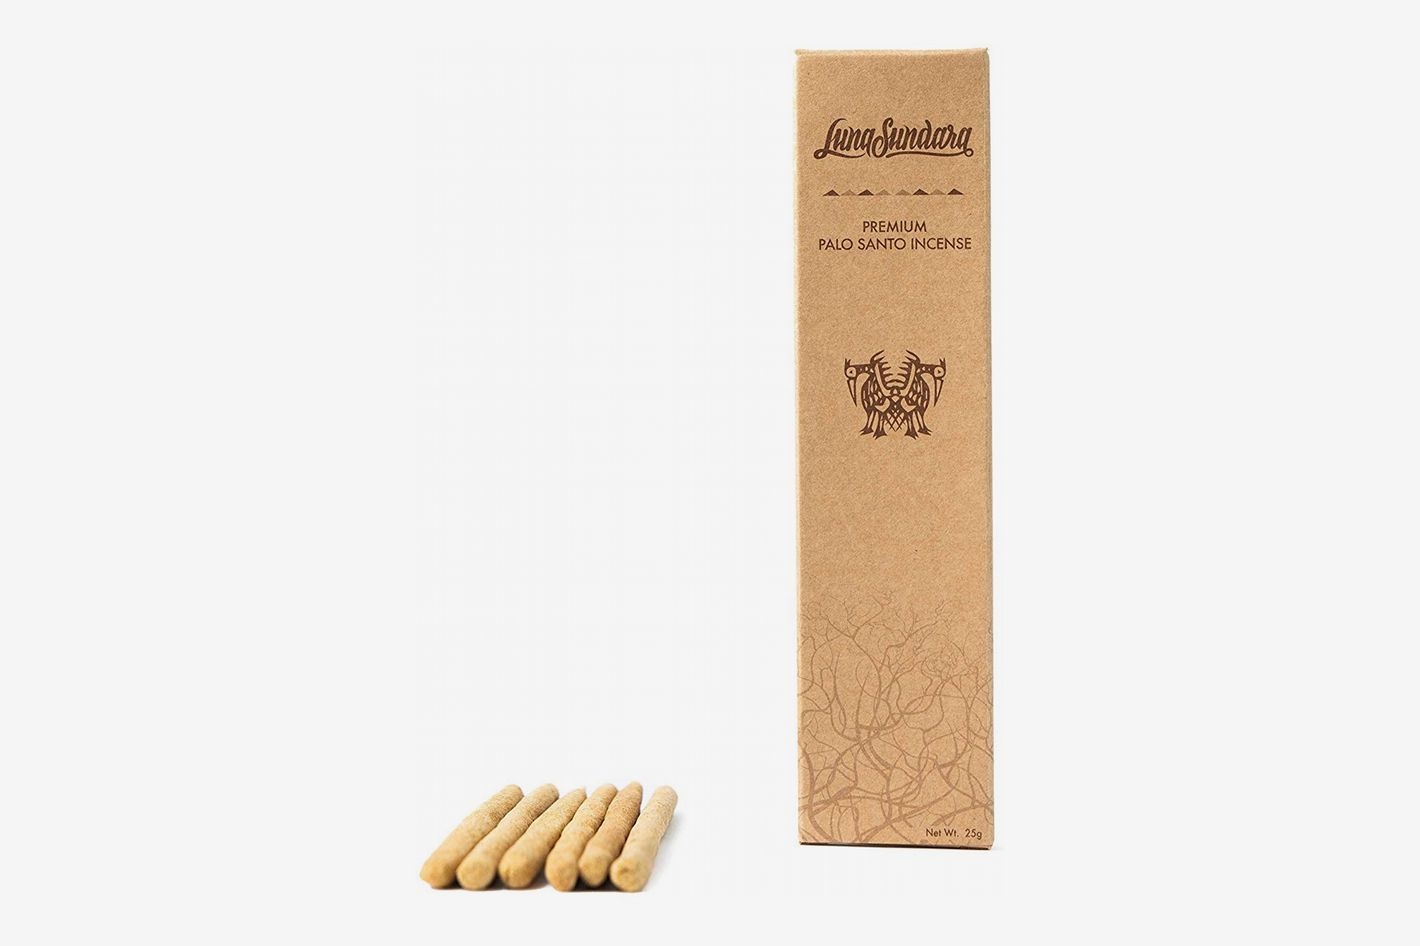 Luna Sundara Palo Santo Hand Rolled Incense Sticks